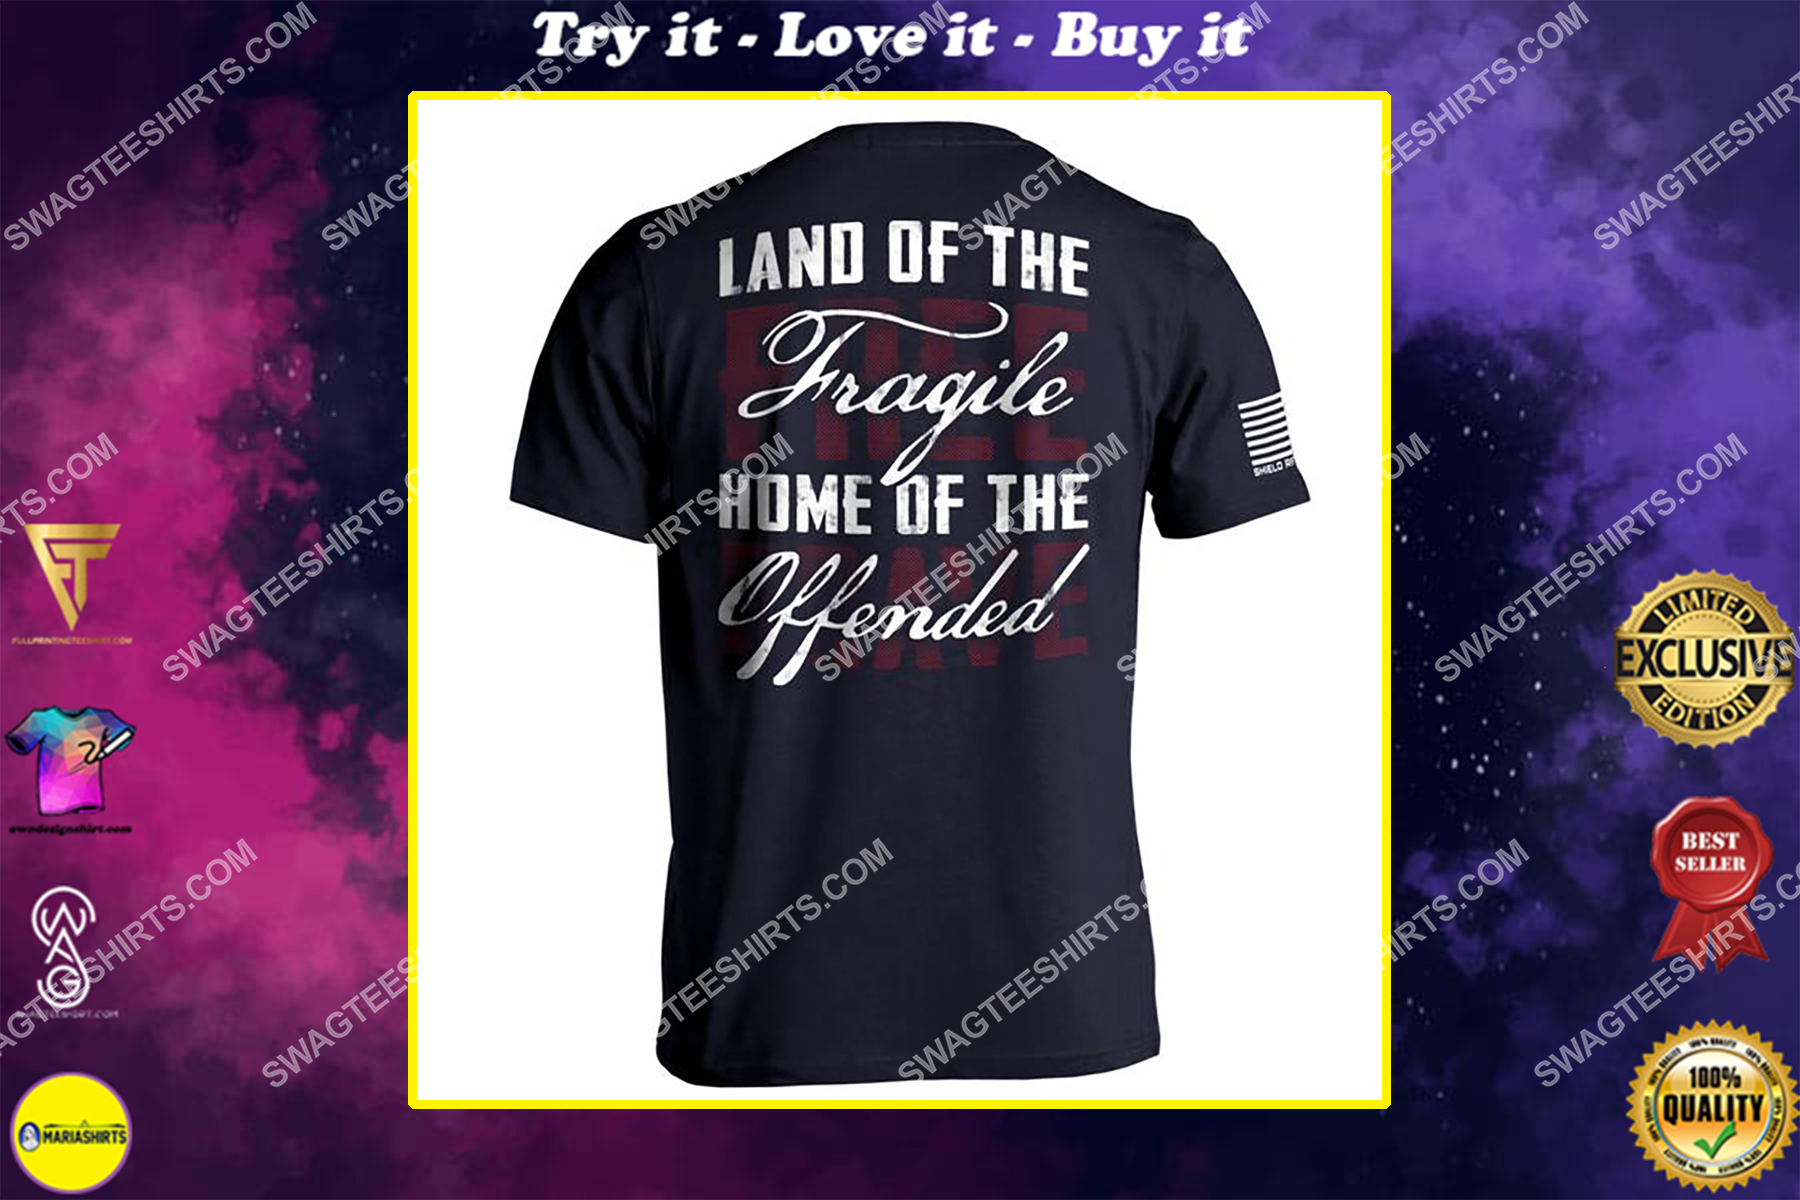 land of the fragile home of the offended political shirt